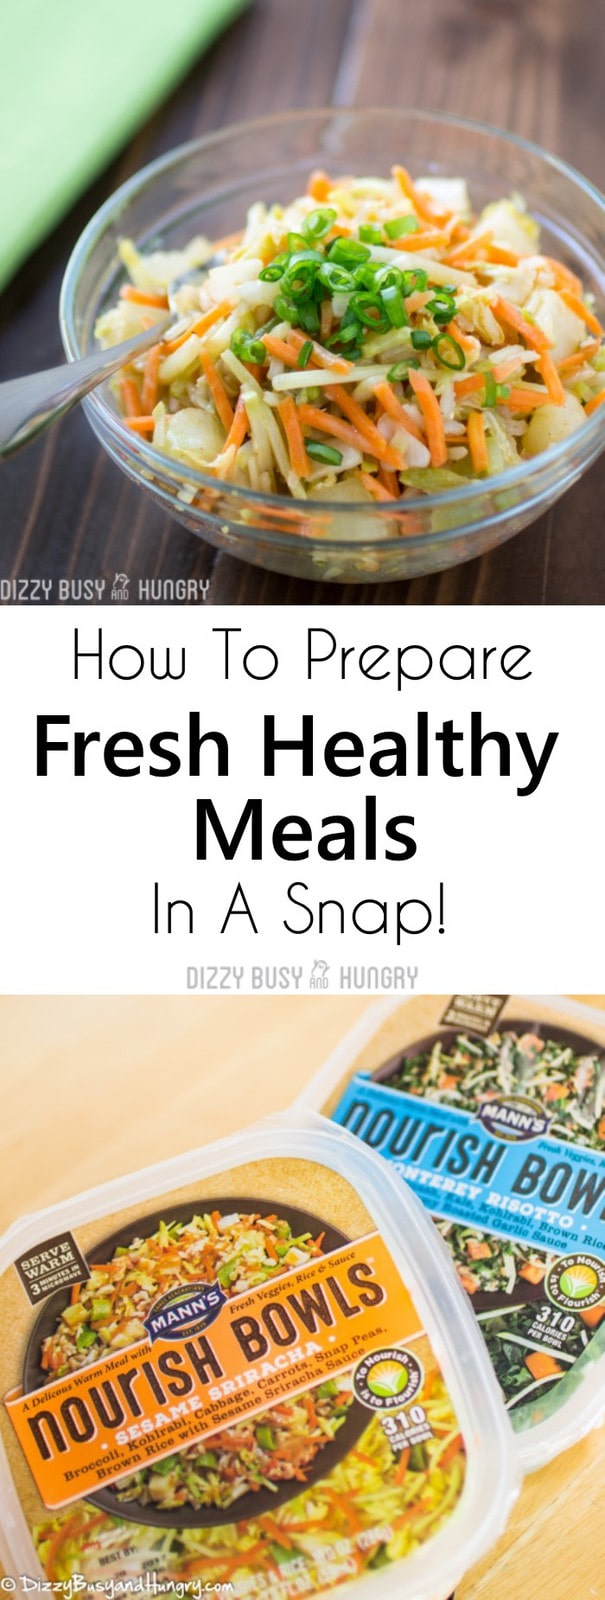 Close up of a sign that says How to Prepare Fresh Healthy Meals in a Snap with pictures of nourish bowls.